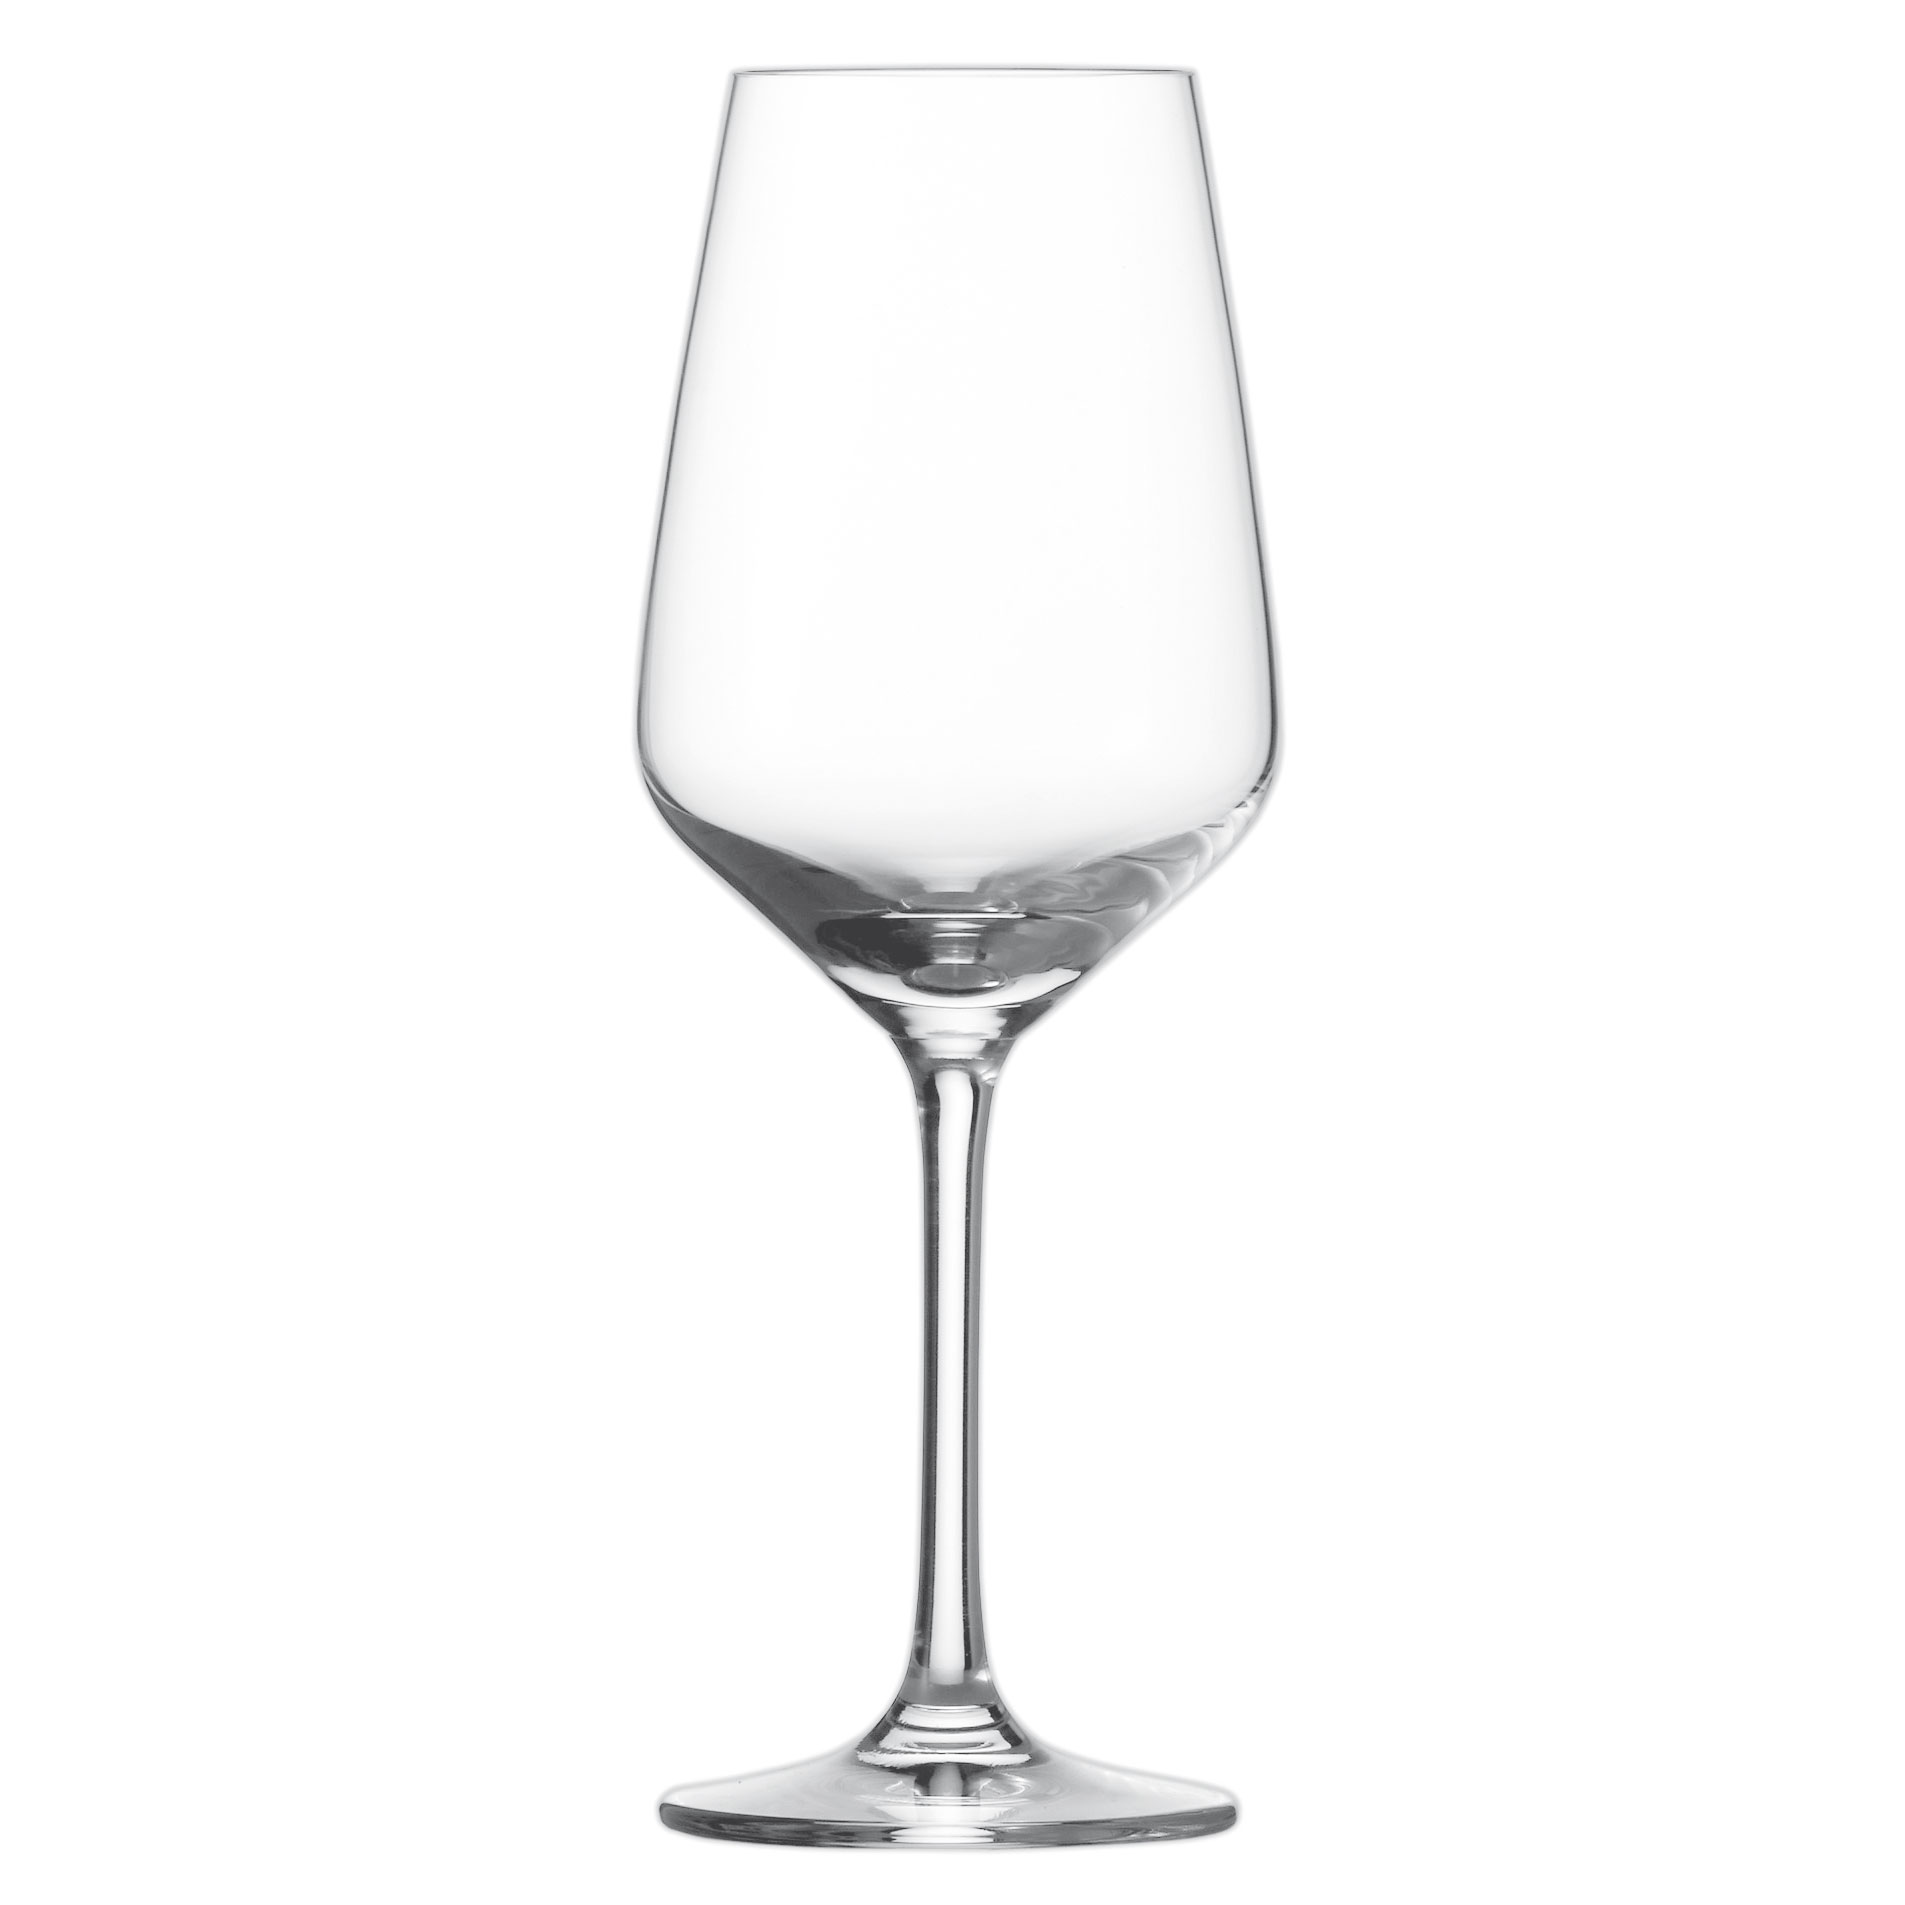 Weinkelch Glas Schott Zwiesel Taste White Wine Glass Set Of 6 Glass 356 Ml 115670 At About Tea De Shop